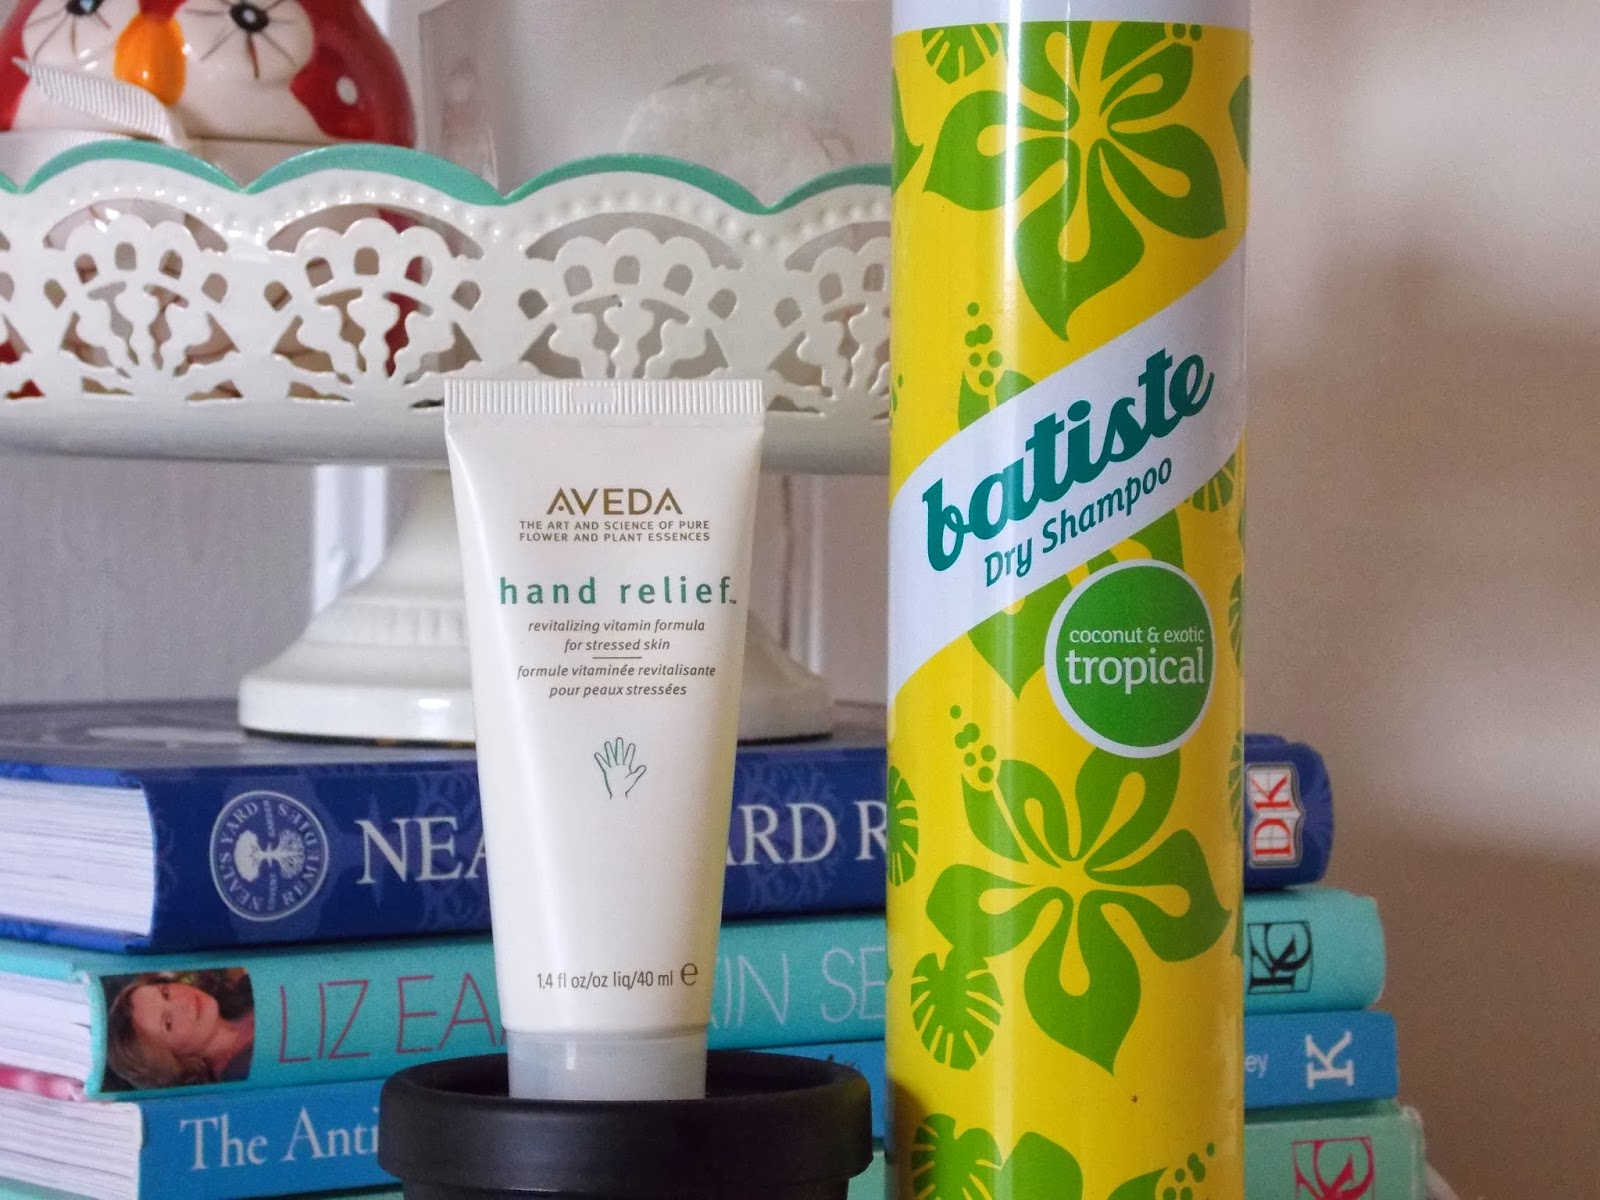 Aveda Hand Relief and Batiste Dry Shampoo Tropical